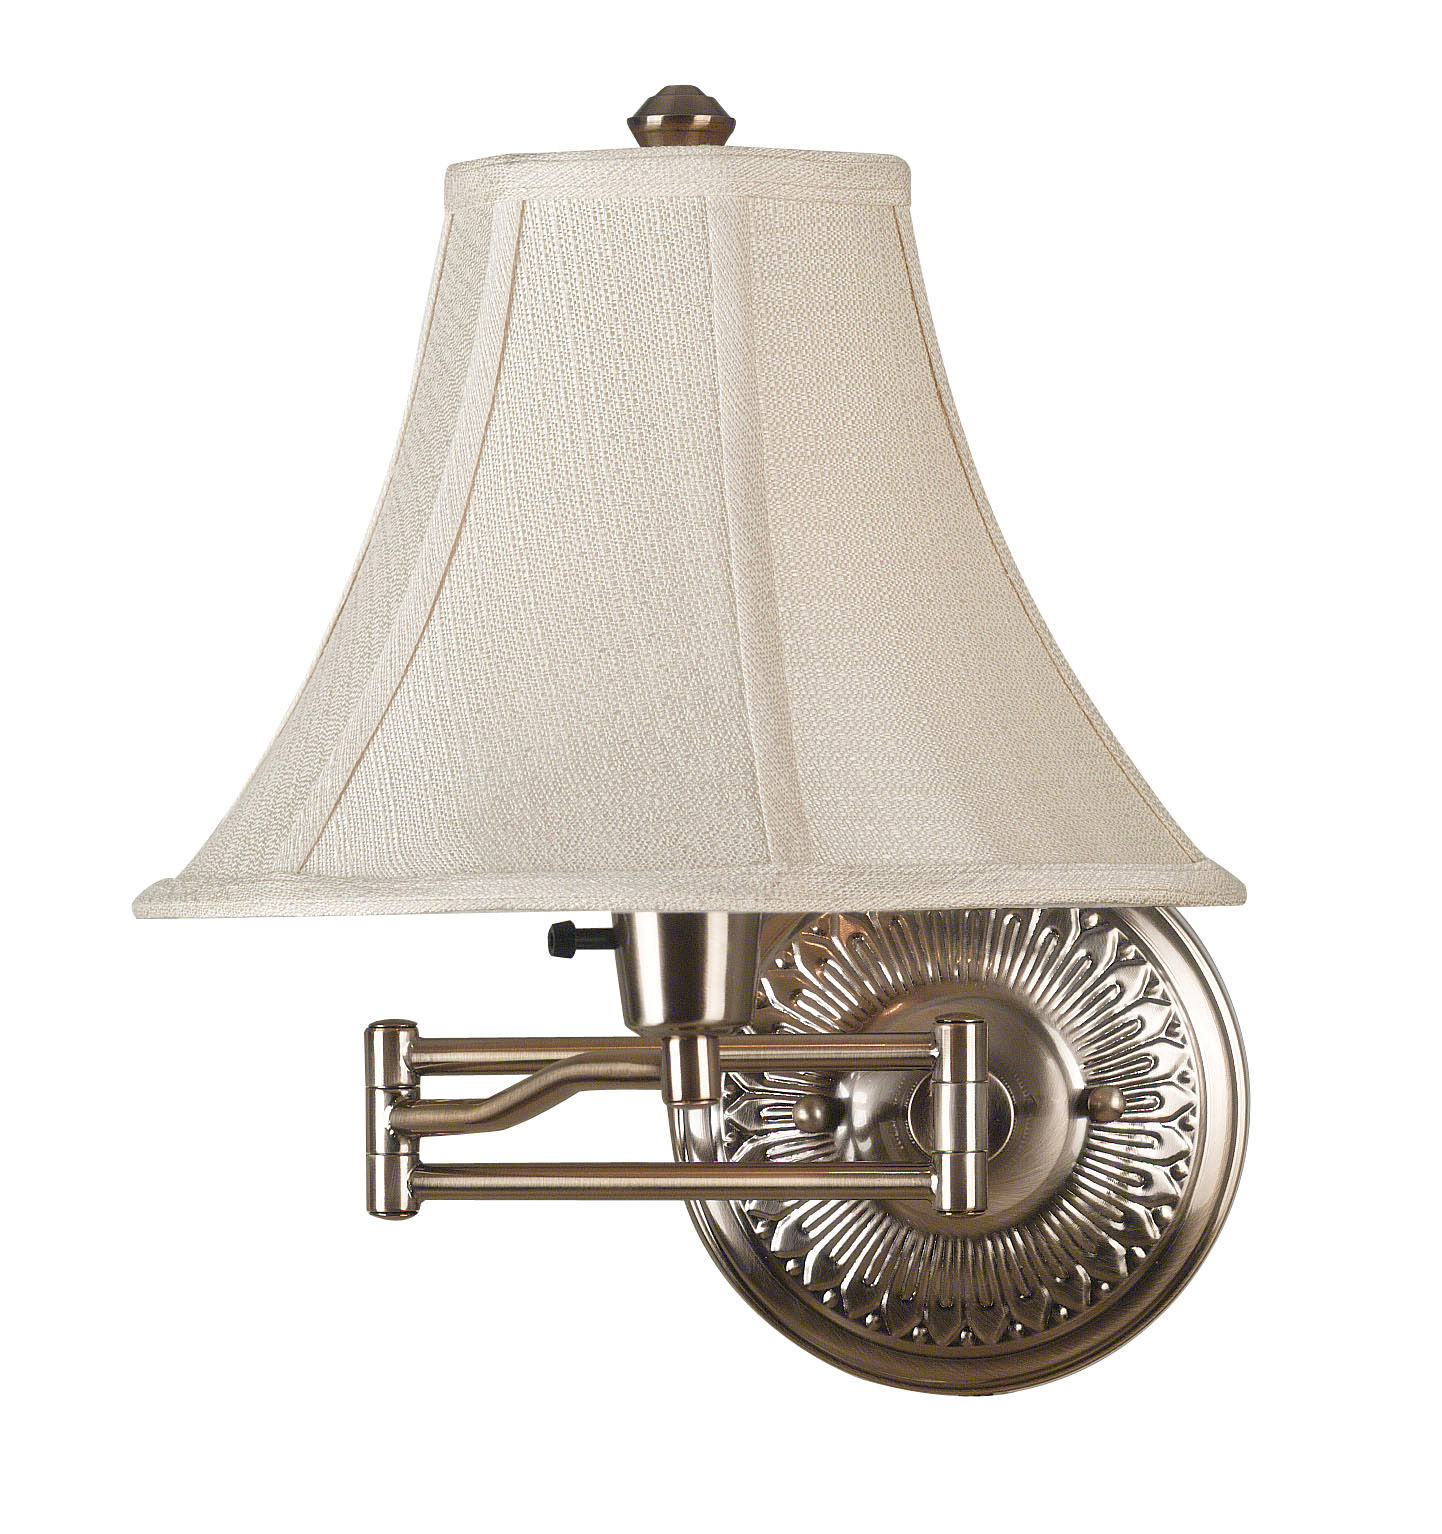 Kenroy Home 21395brbr Amherst Swing Arm Wall Lamp 3 Way Brass Light Switch